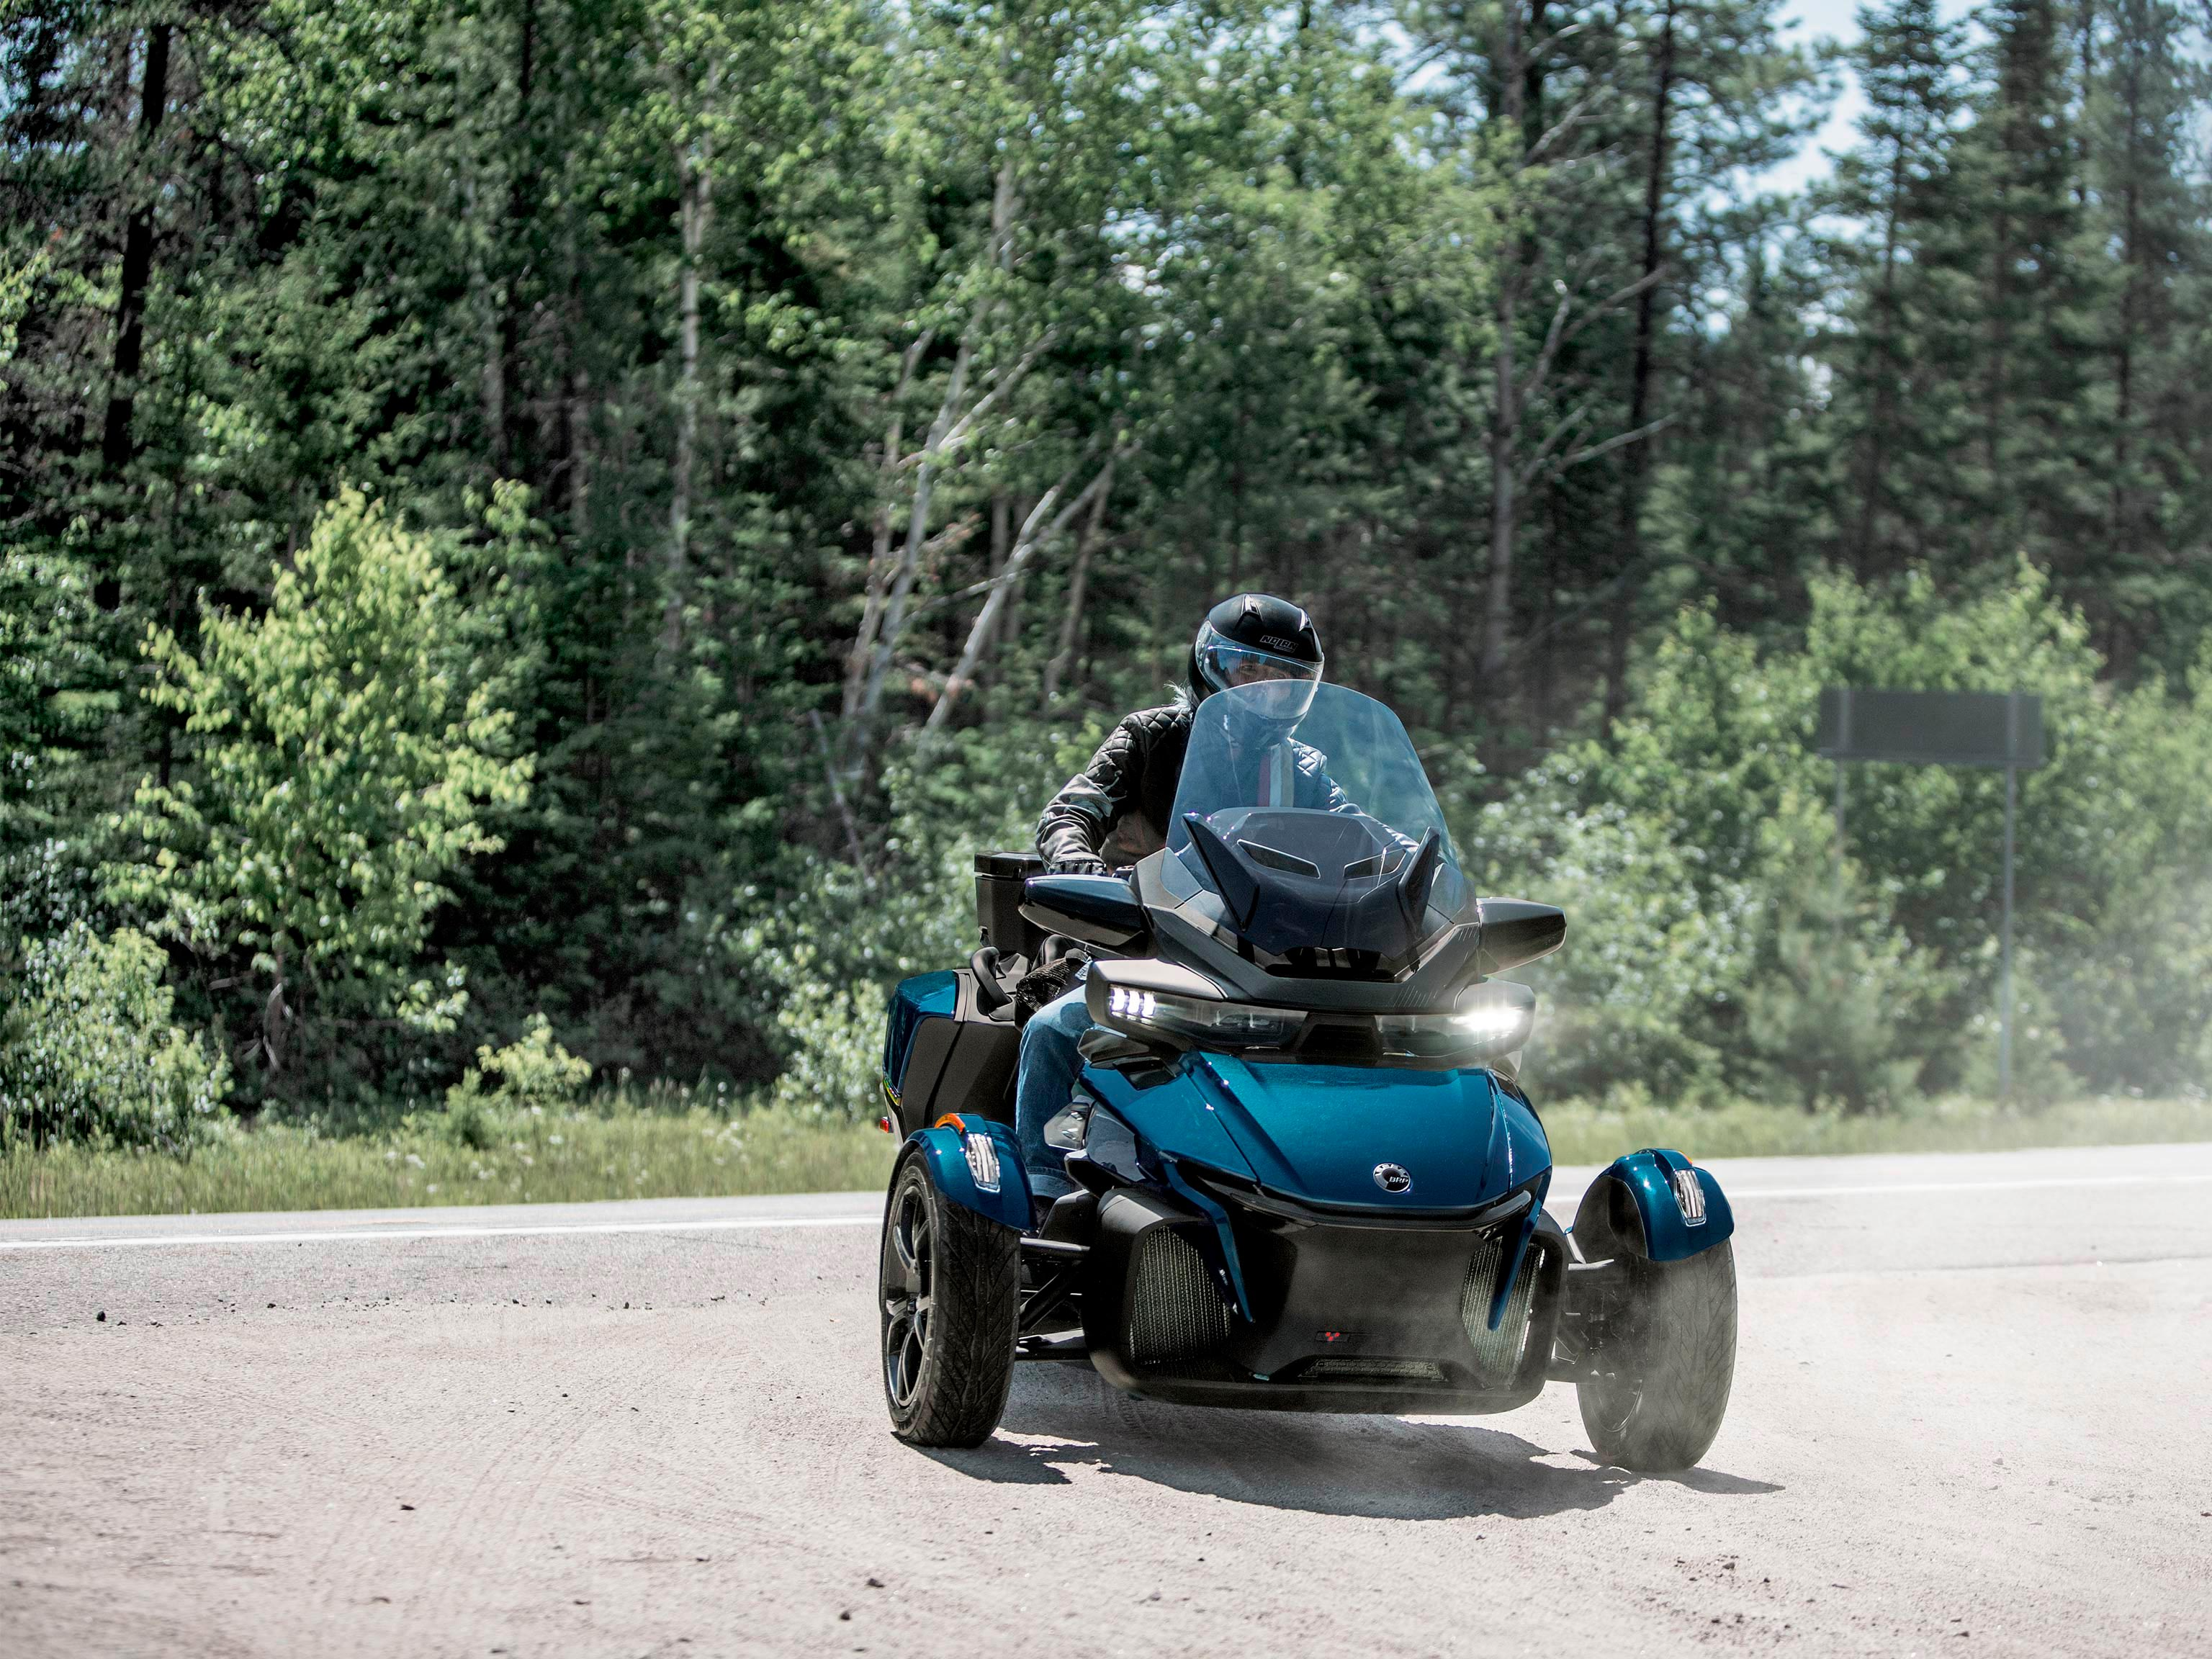 4 2020 Can-Am Spyder RT vehicles riding on open road